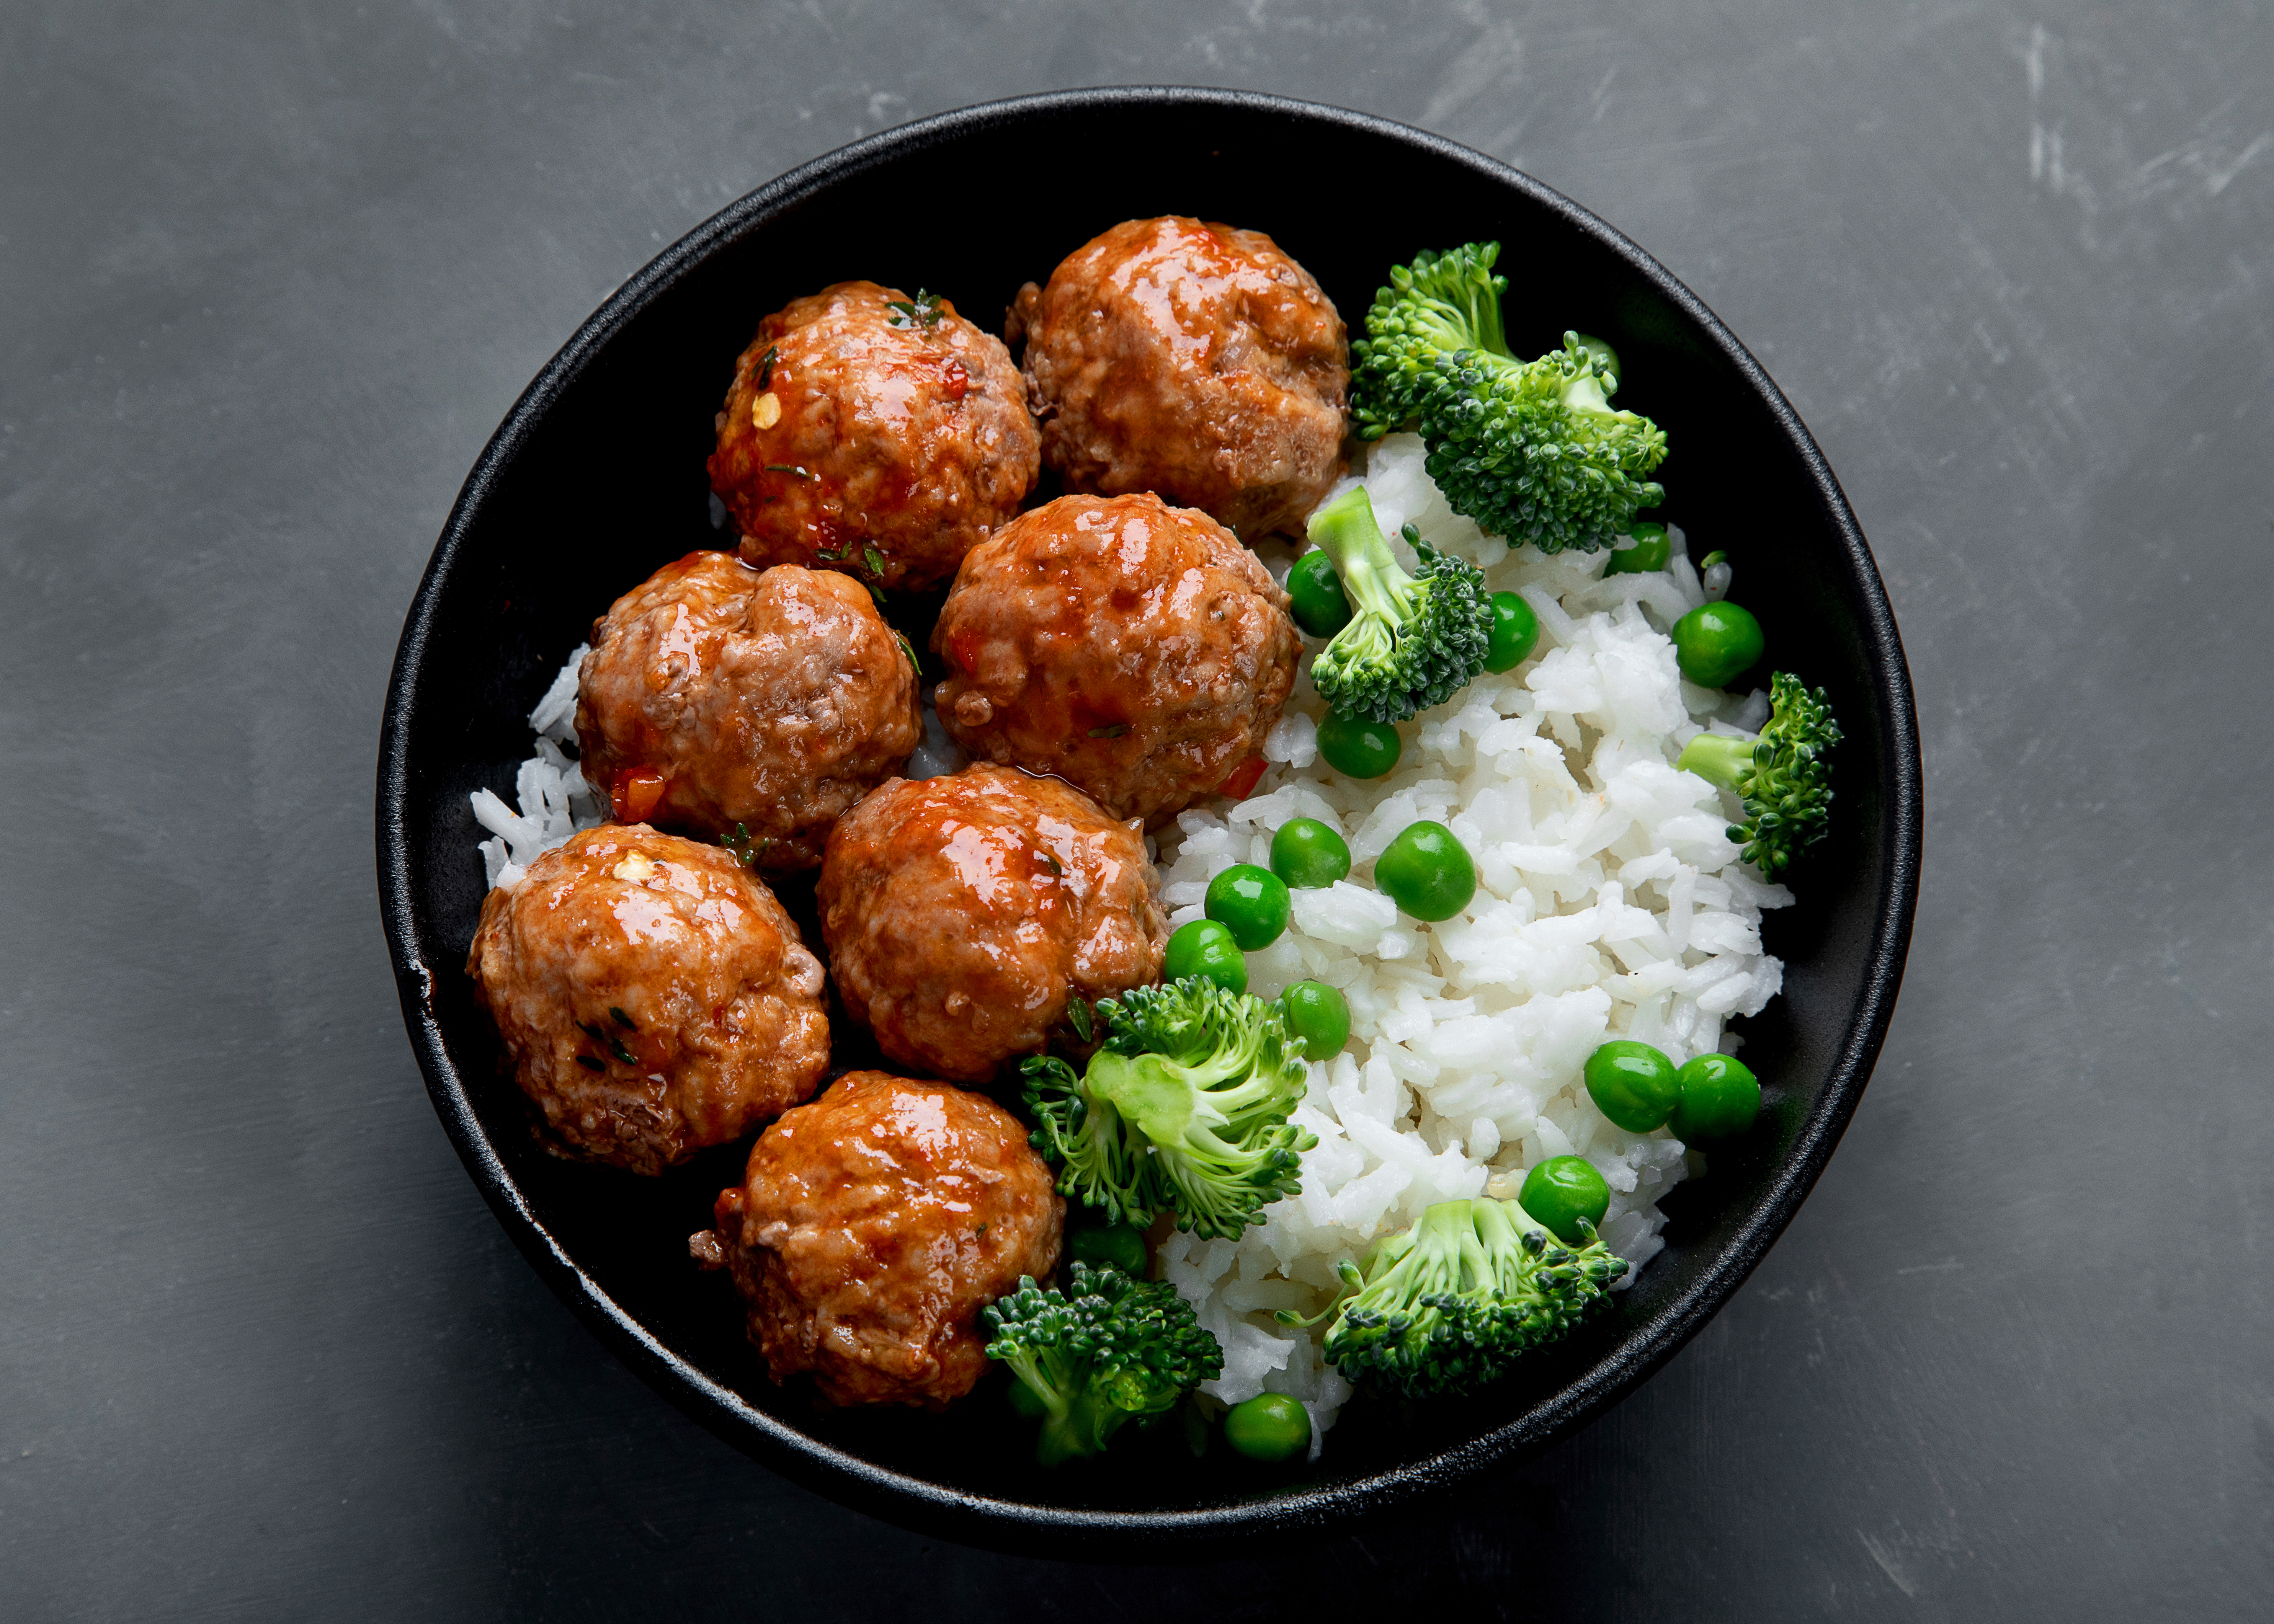 Seven meatballs in a black bowl sit alongside white rice, broccoli, and peas.